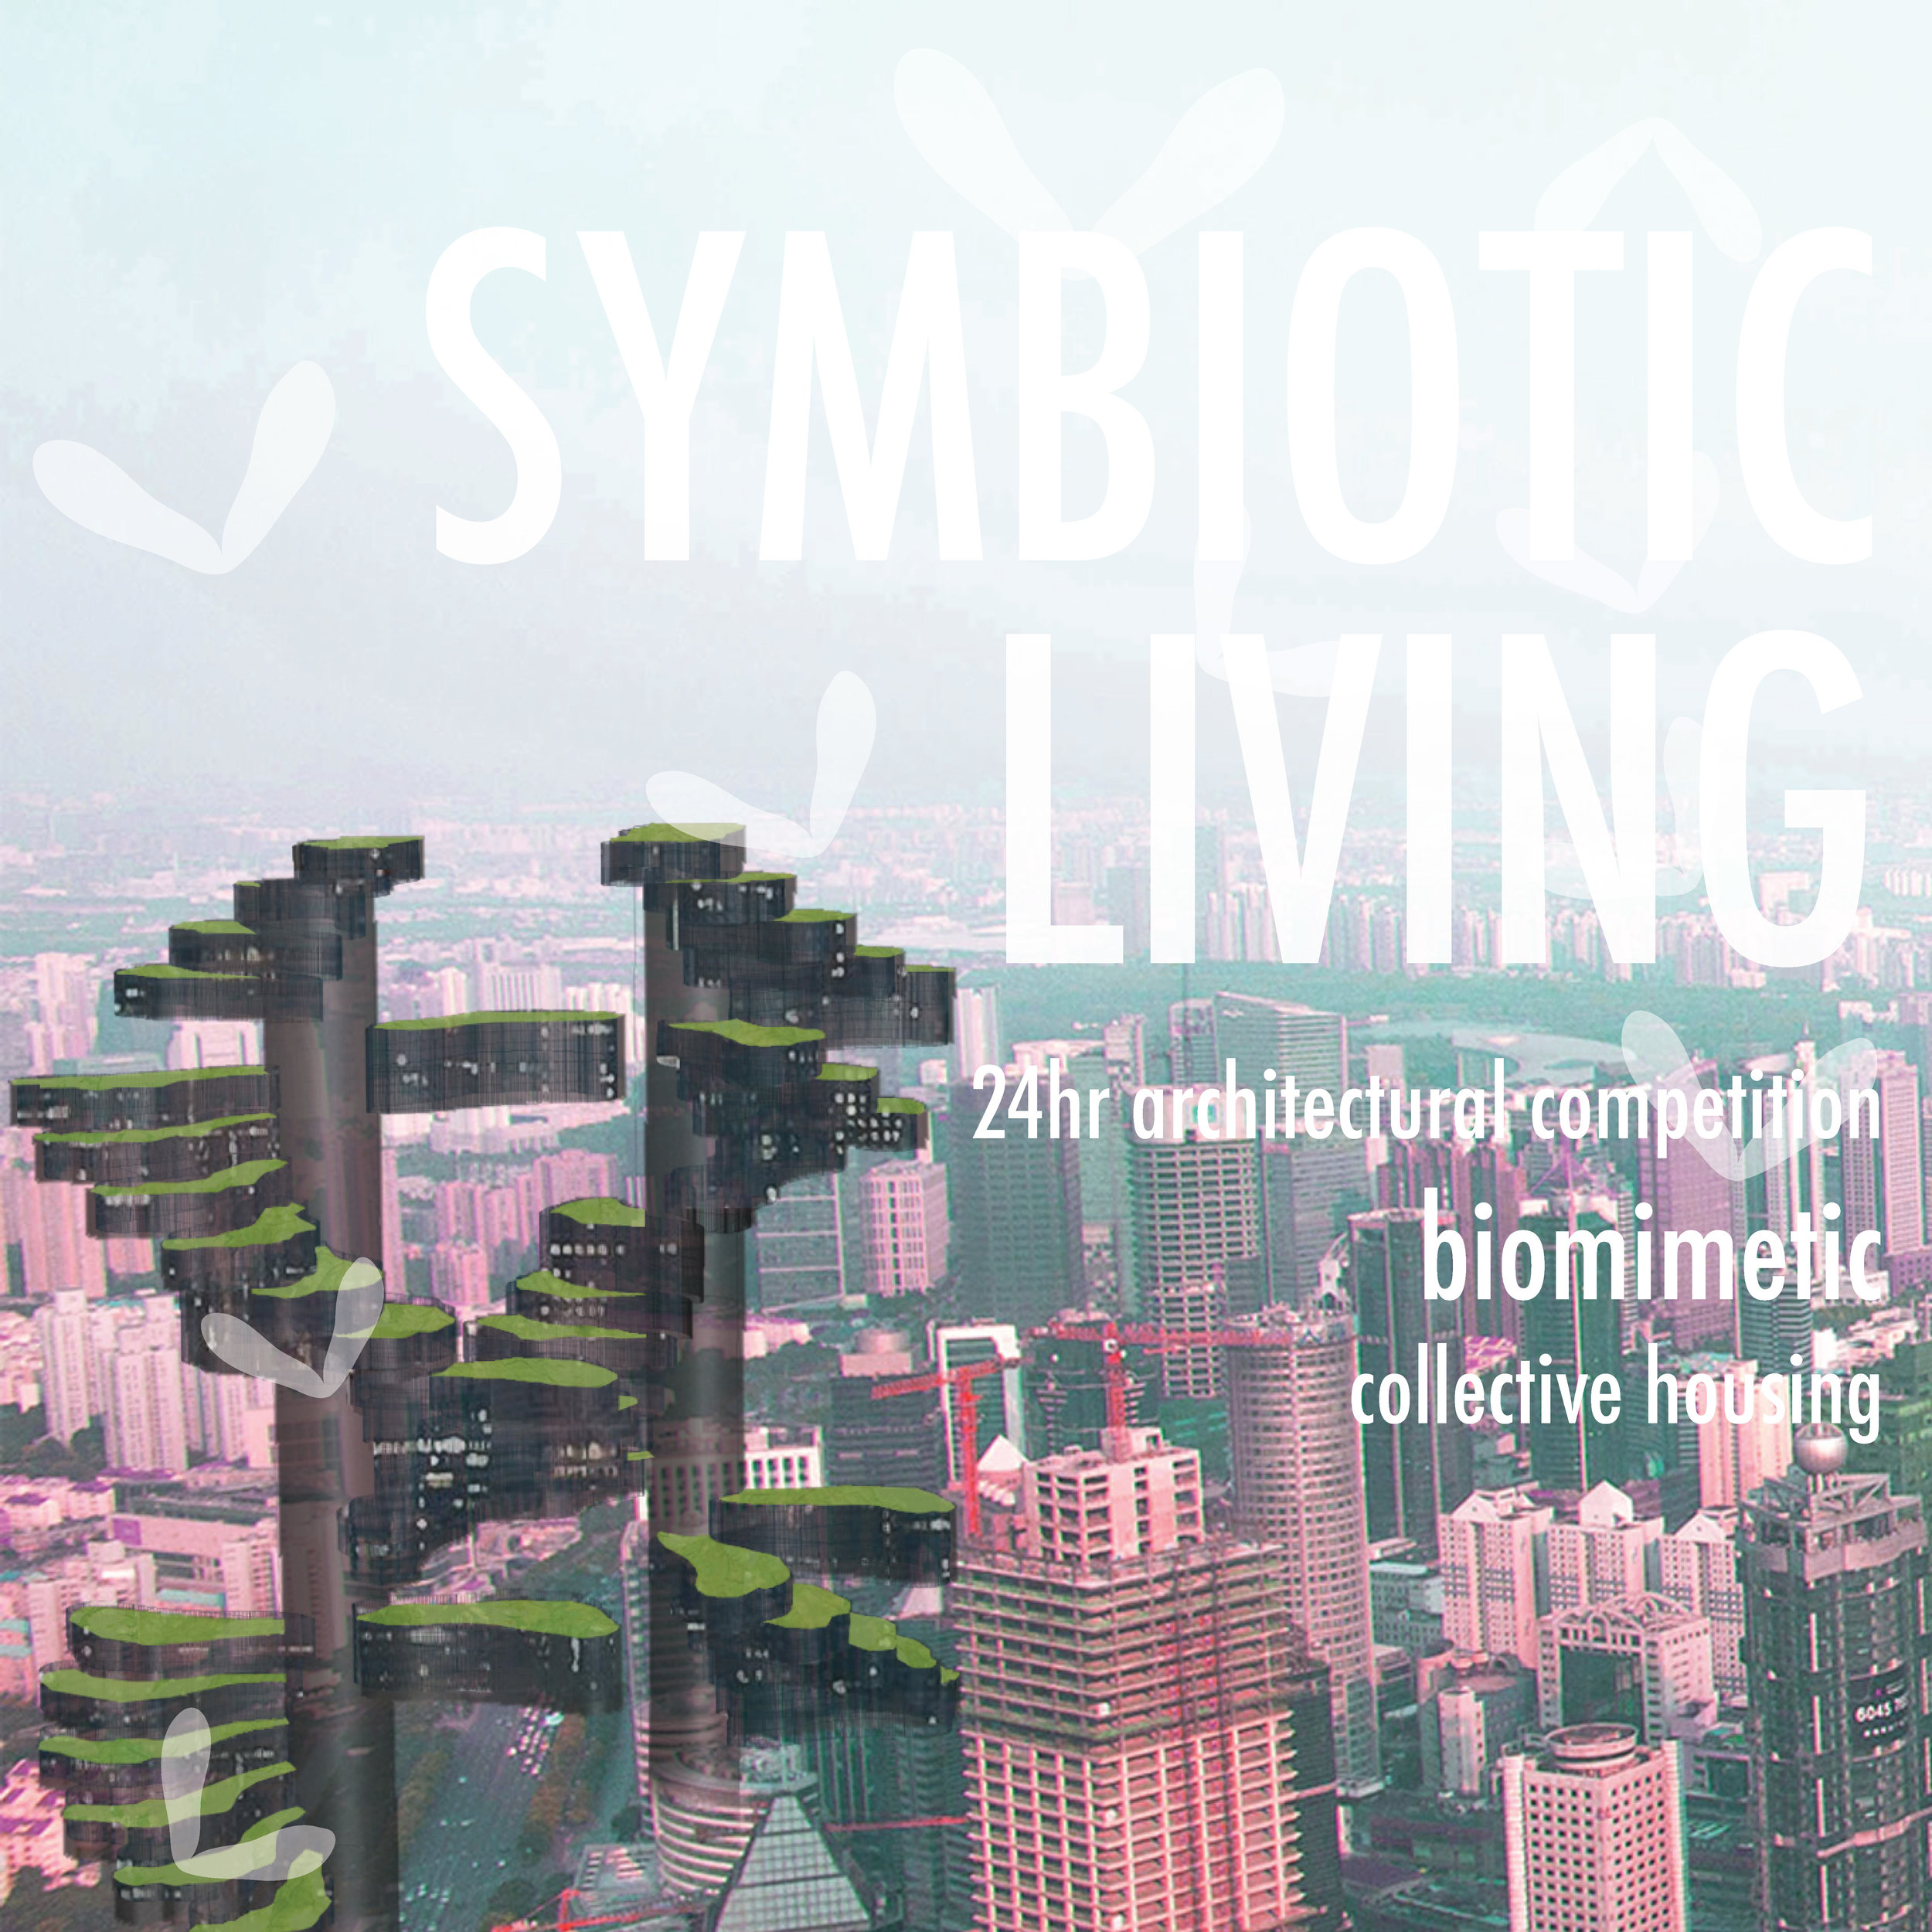 Symbiotic Living   [24hr Architectural Competition | Biomimetic]  01/12/18